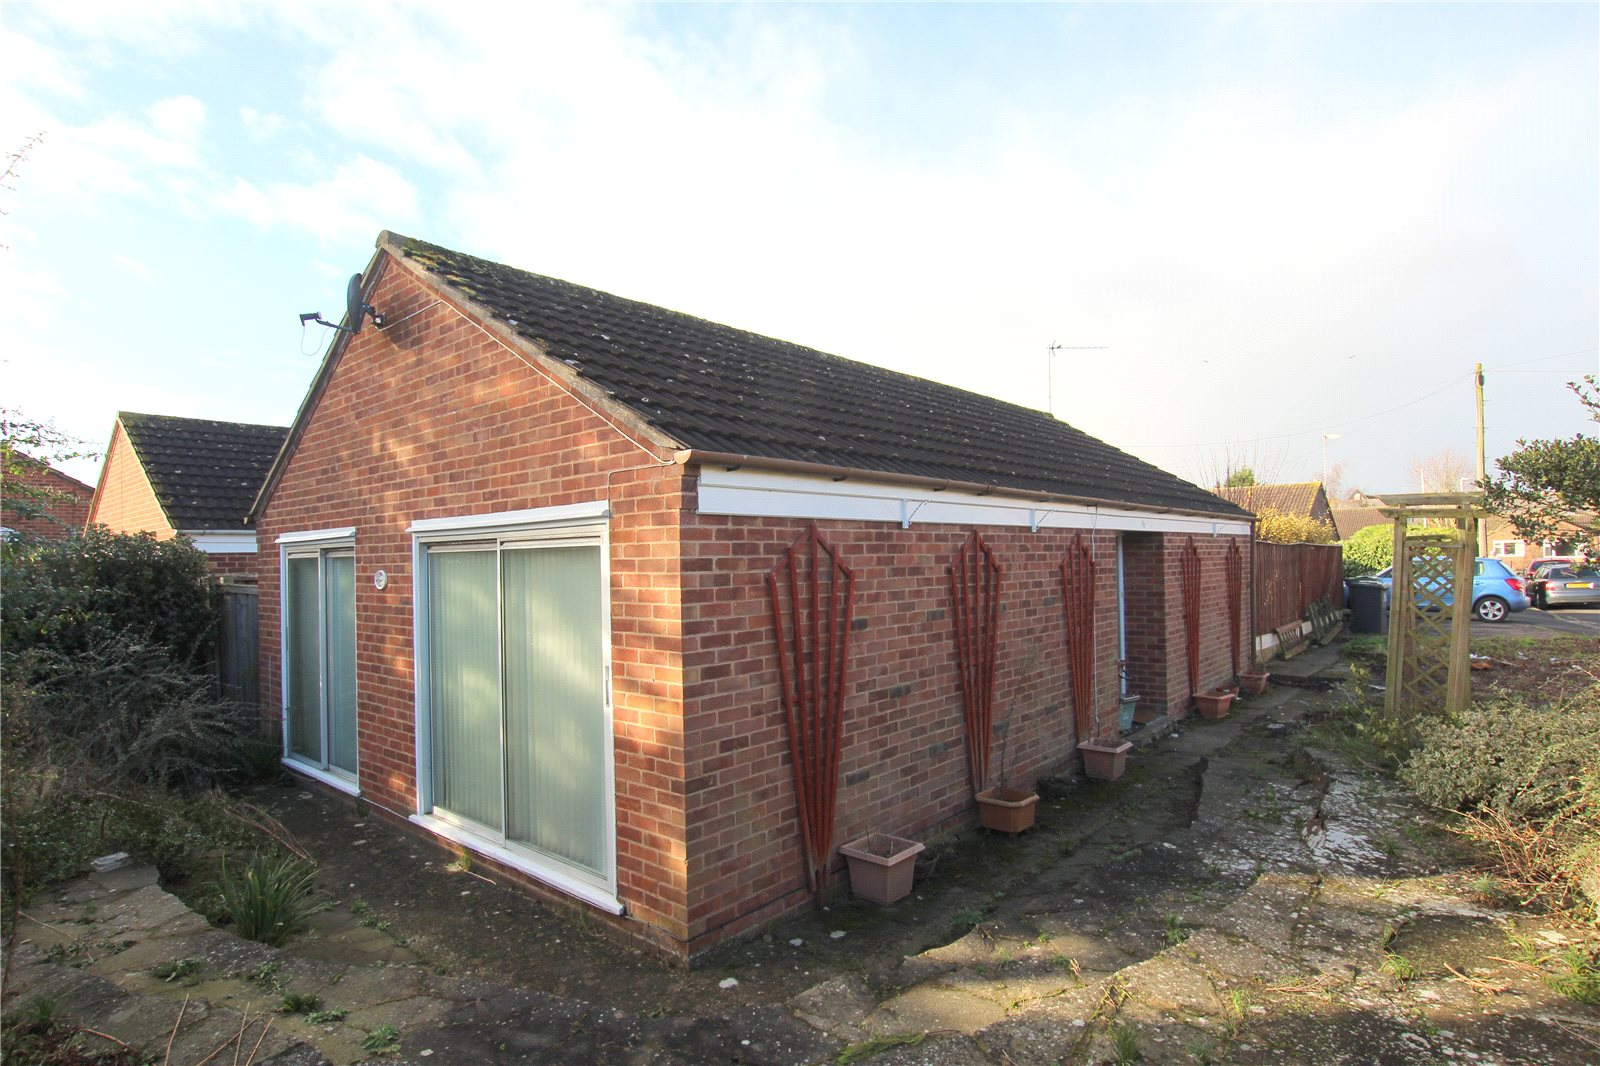 2 Bedrooms Bungalow for sale in Courtfield Road Quedgeley Gloucester GL2